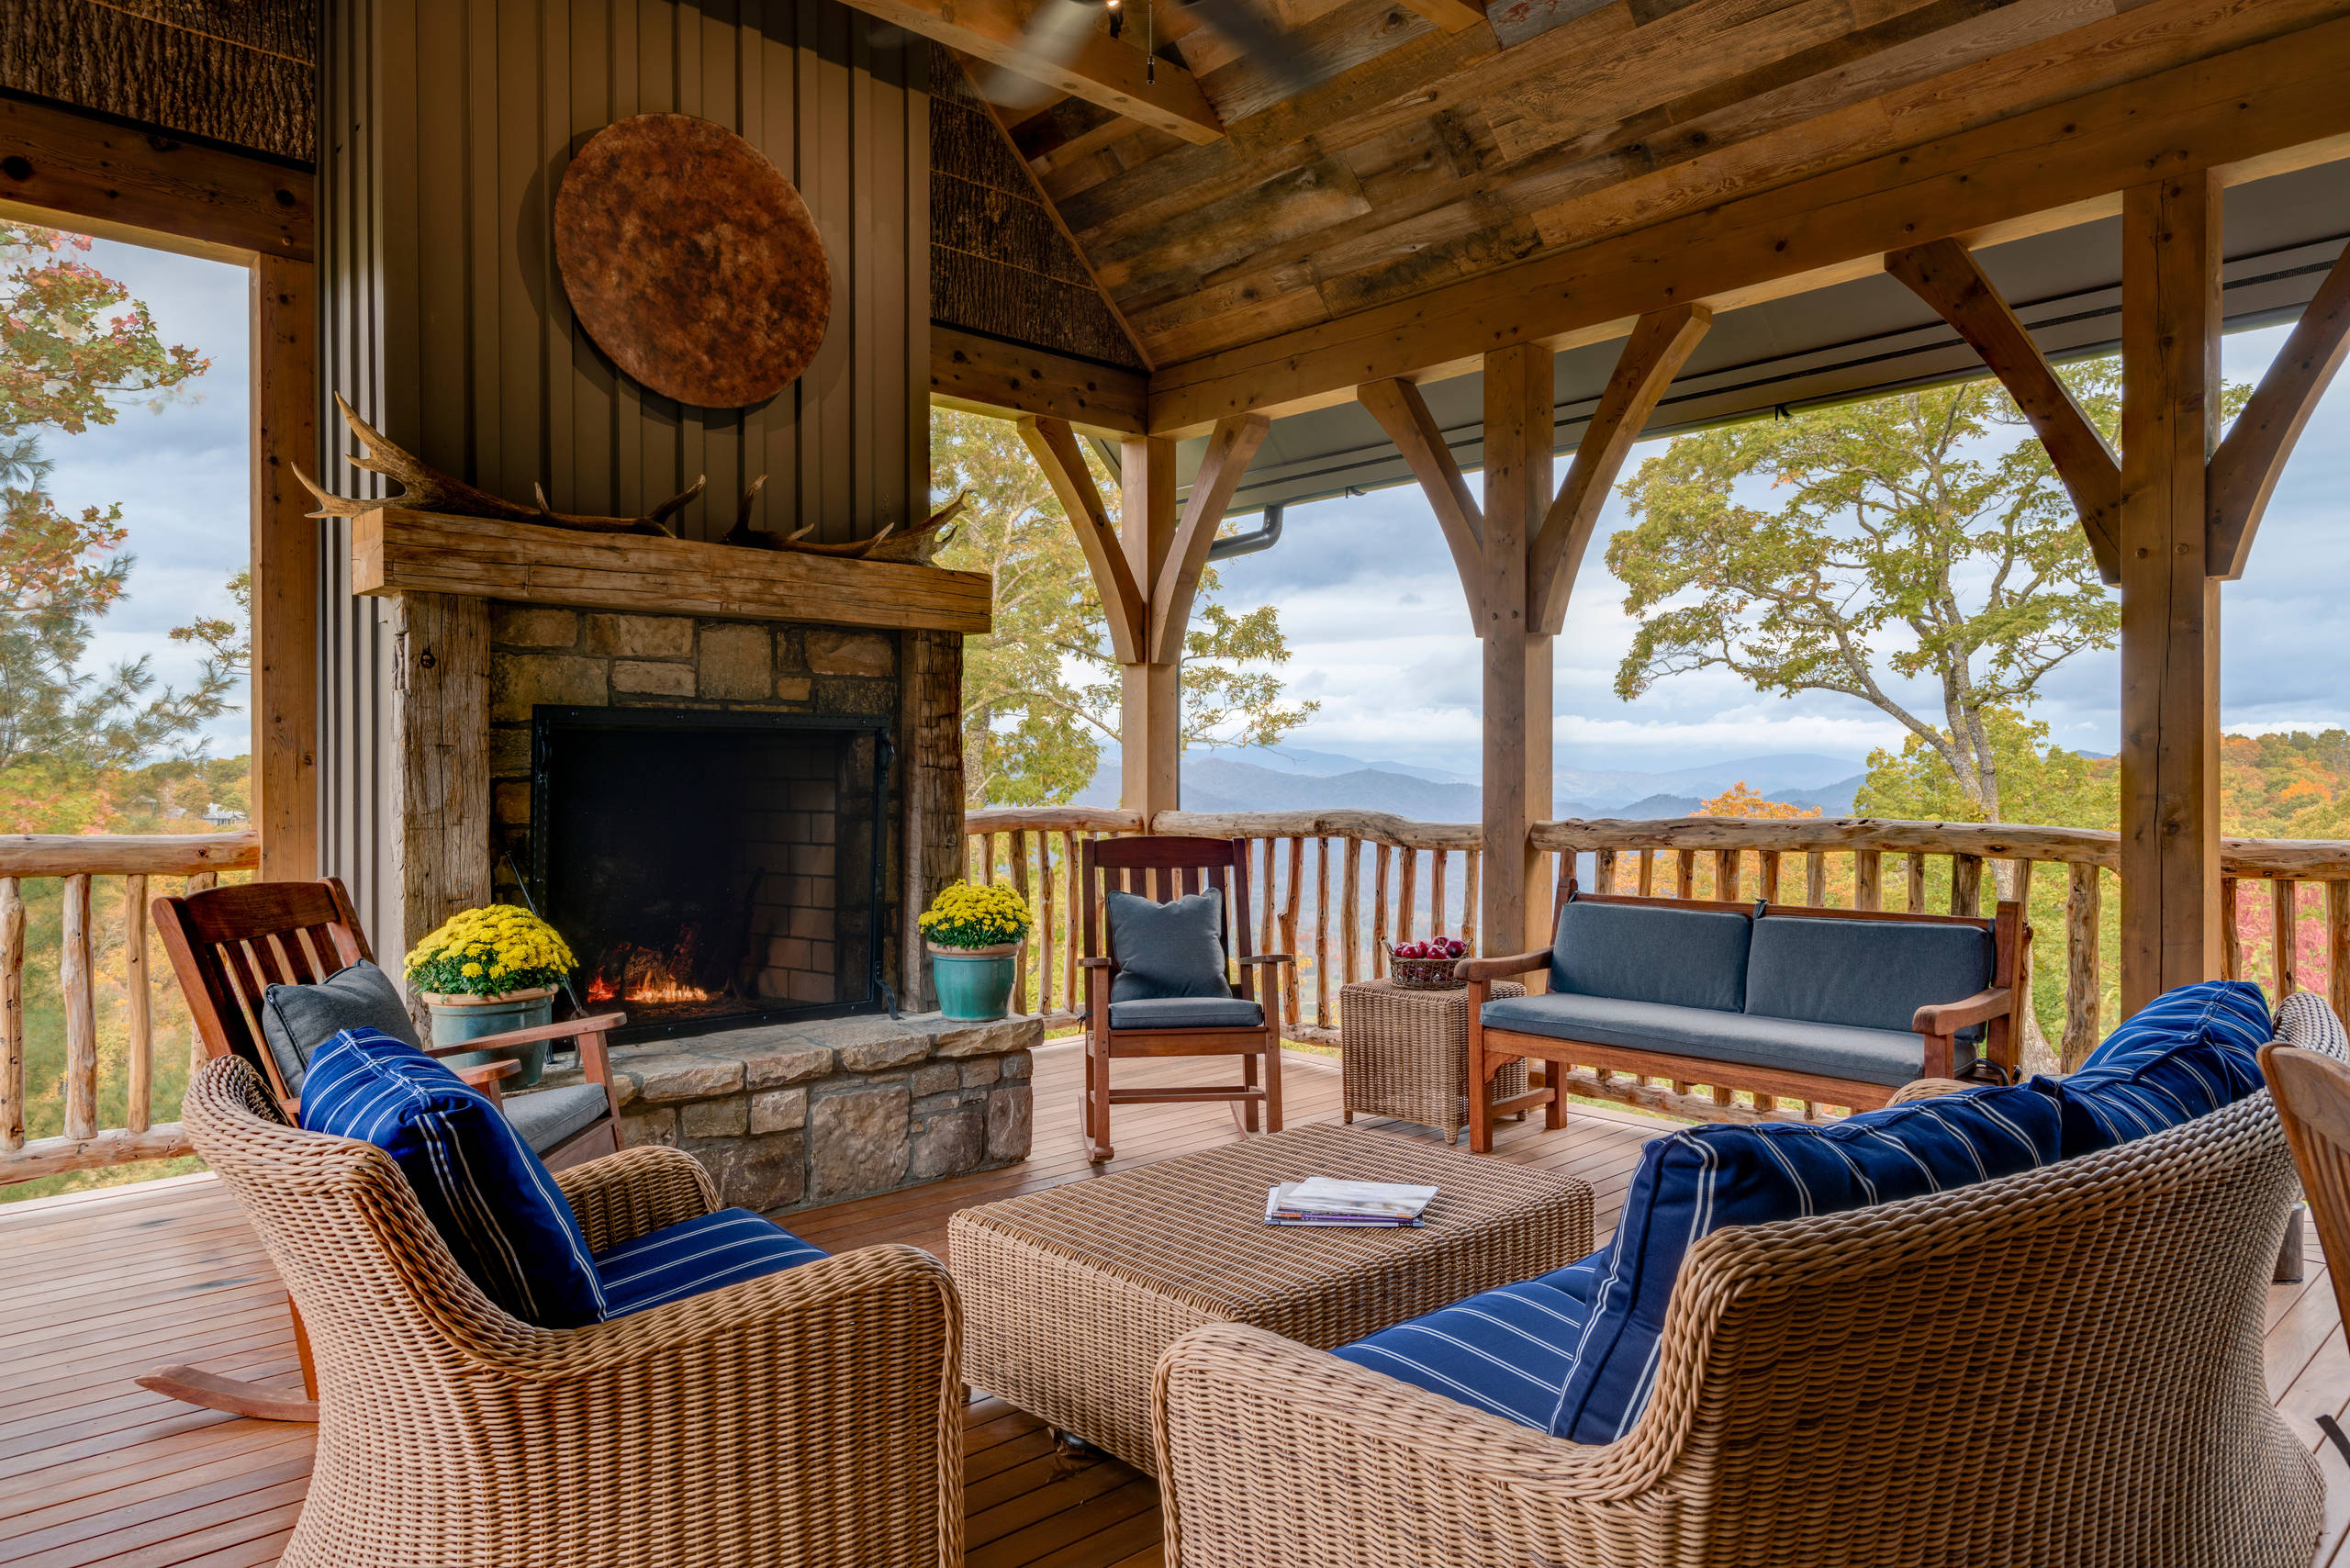 15 Amazing Rustic Deck Designs That Will Enhance Your ... on Patio With Deck Ideas id=52594